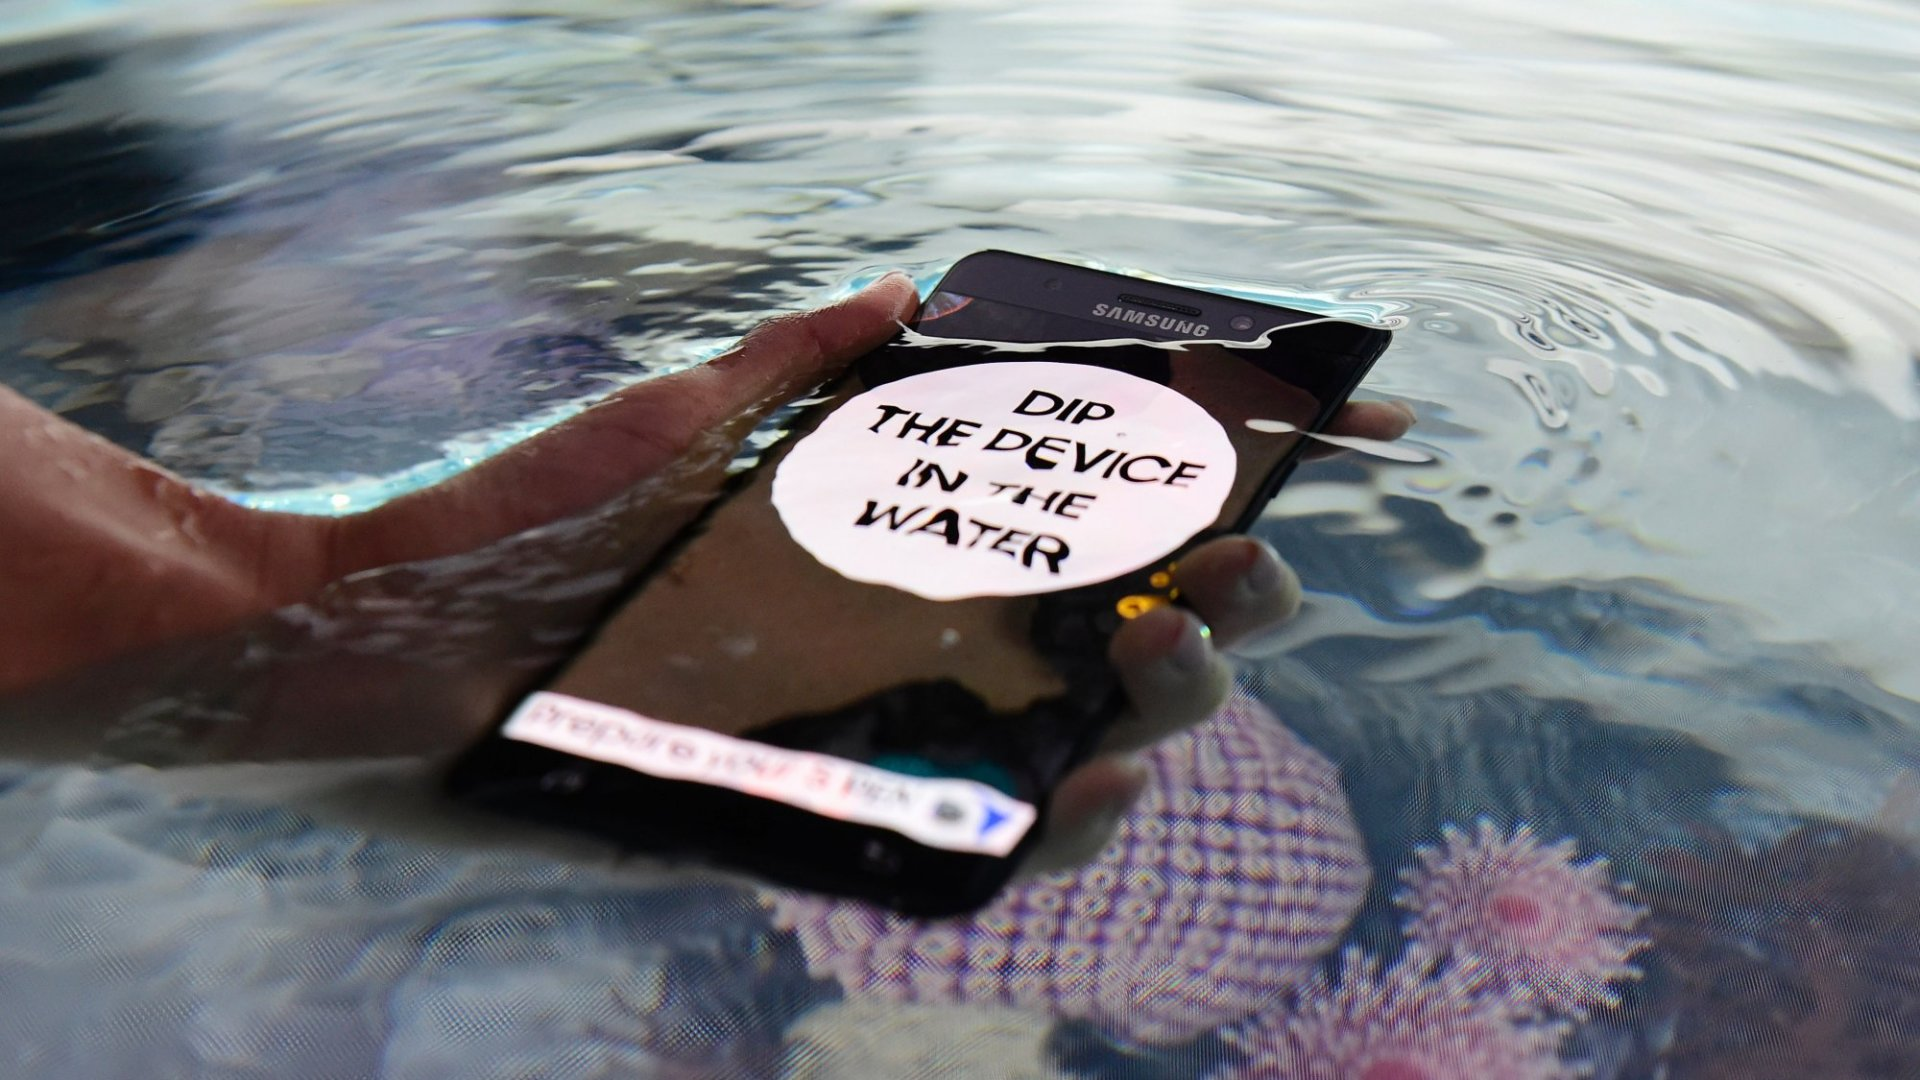 Samsung Phones Aren't as Waterproof as Ads Make Them Appear, Australian Government Says